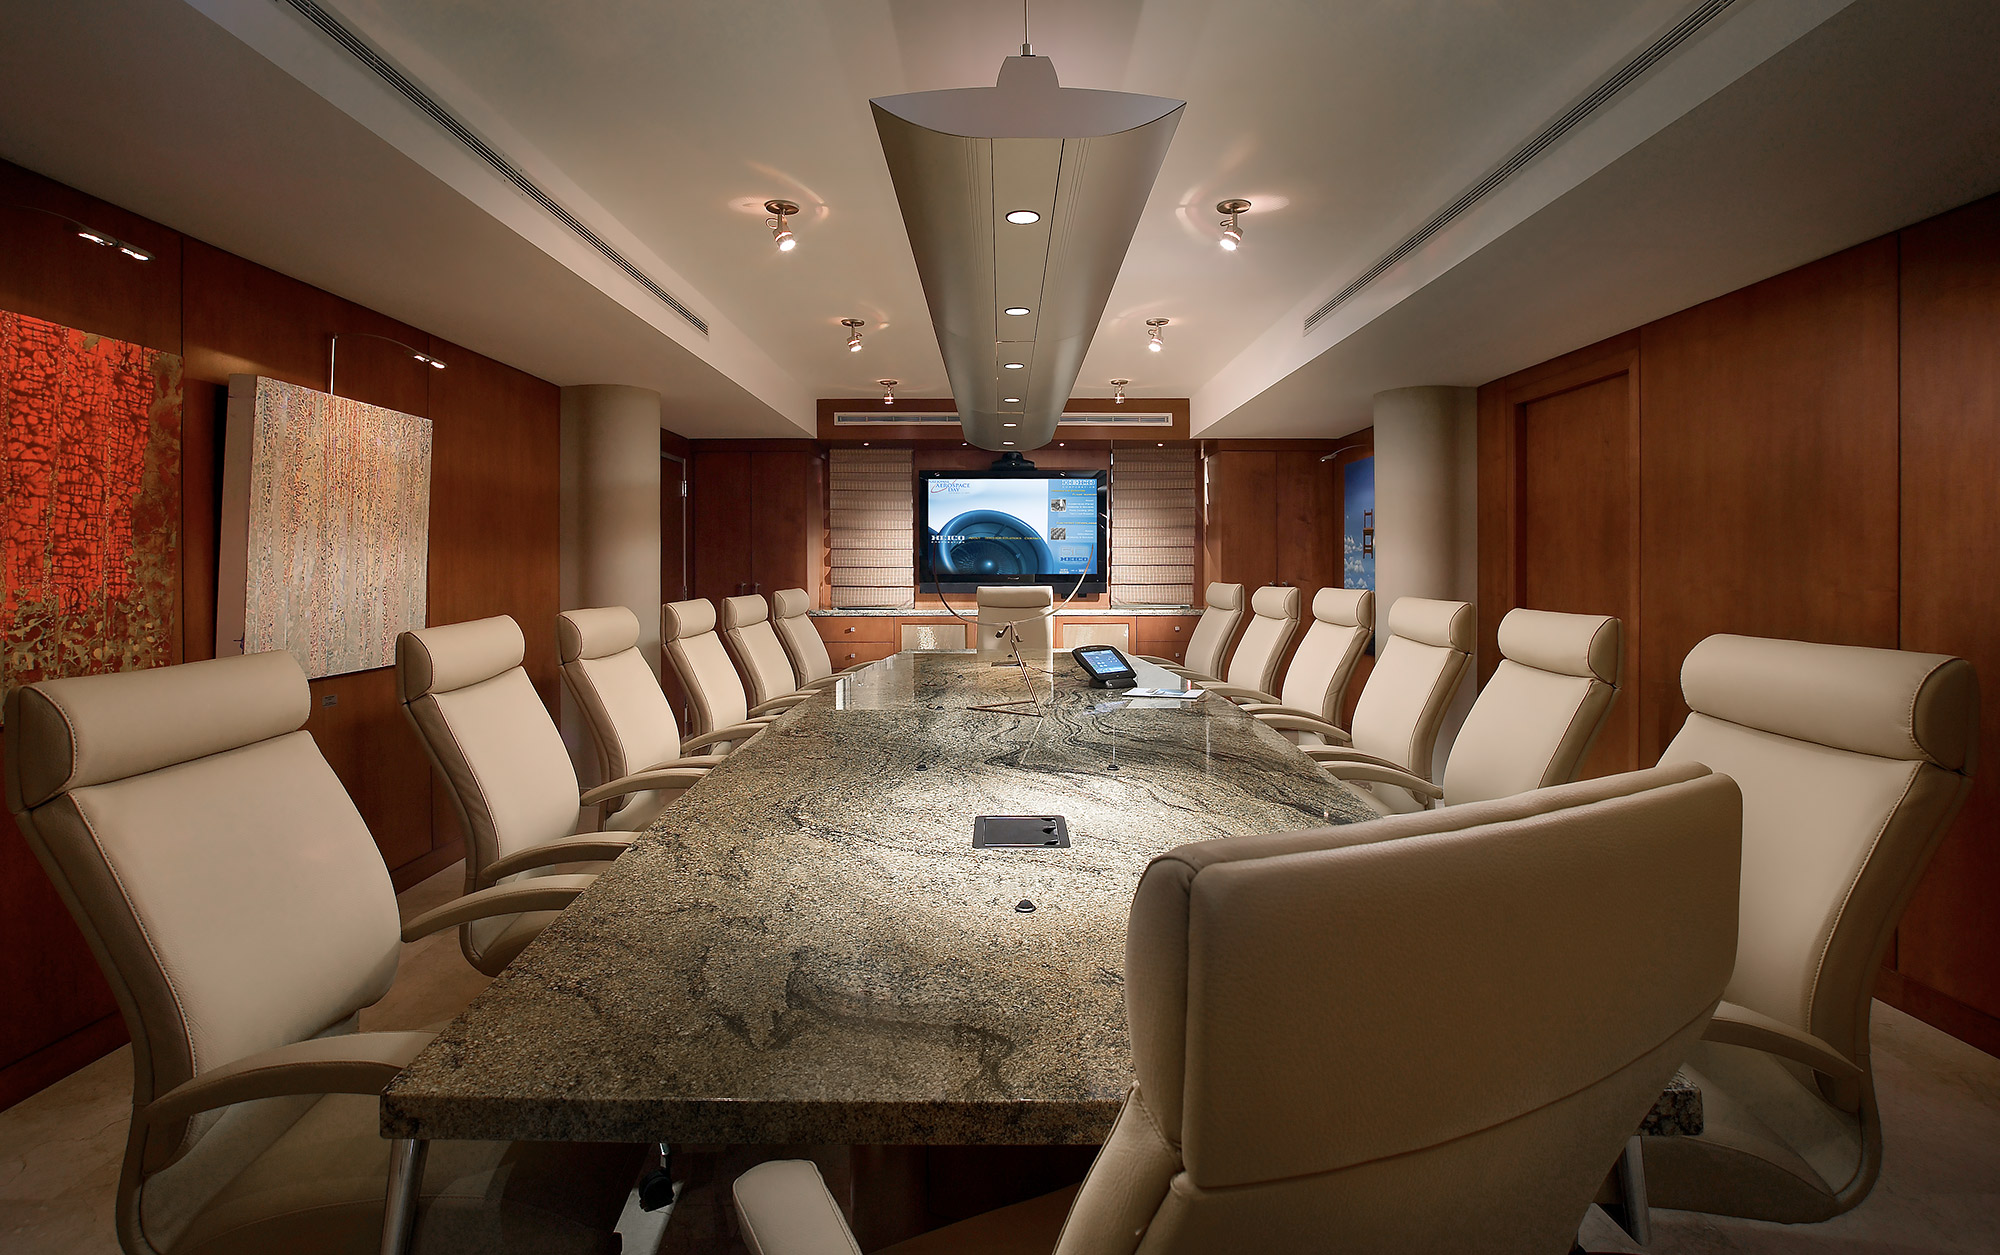 Heico-Conference-Room-Miami-Interior-Design-Photography